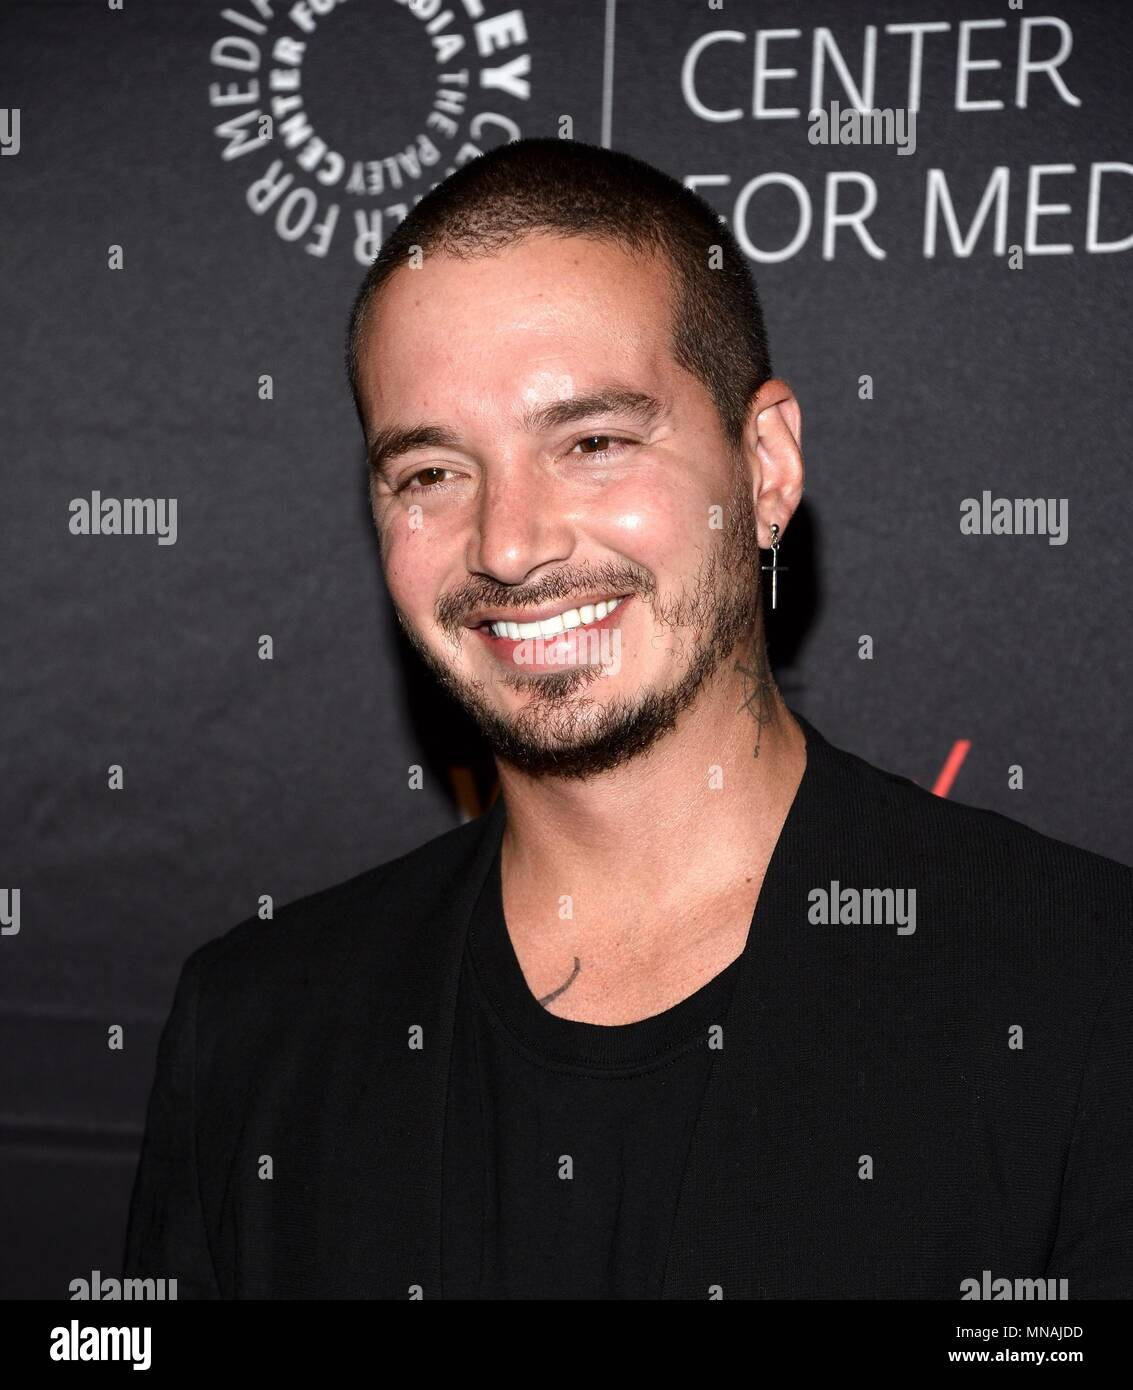 J Balvin drops new album early for sweet and emotional reason  |J Balvin